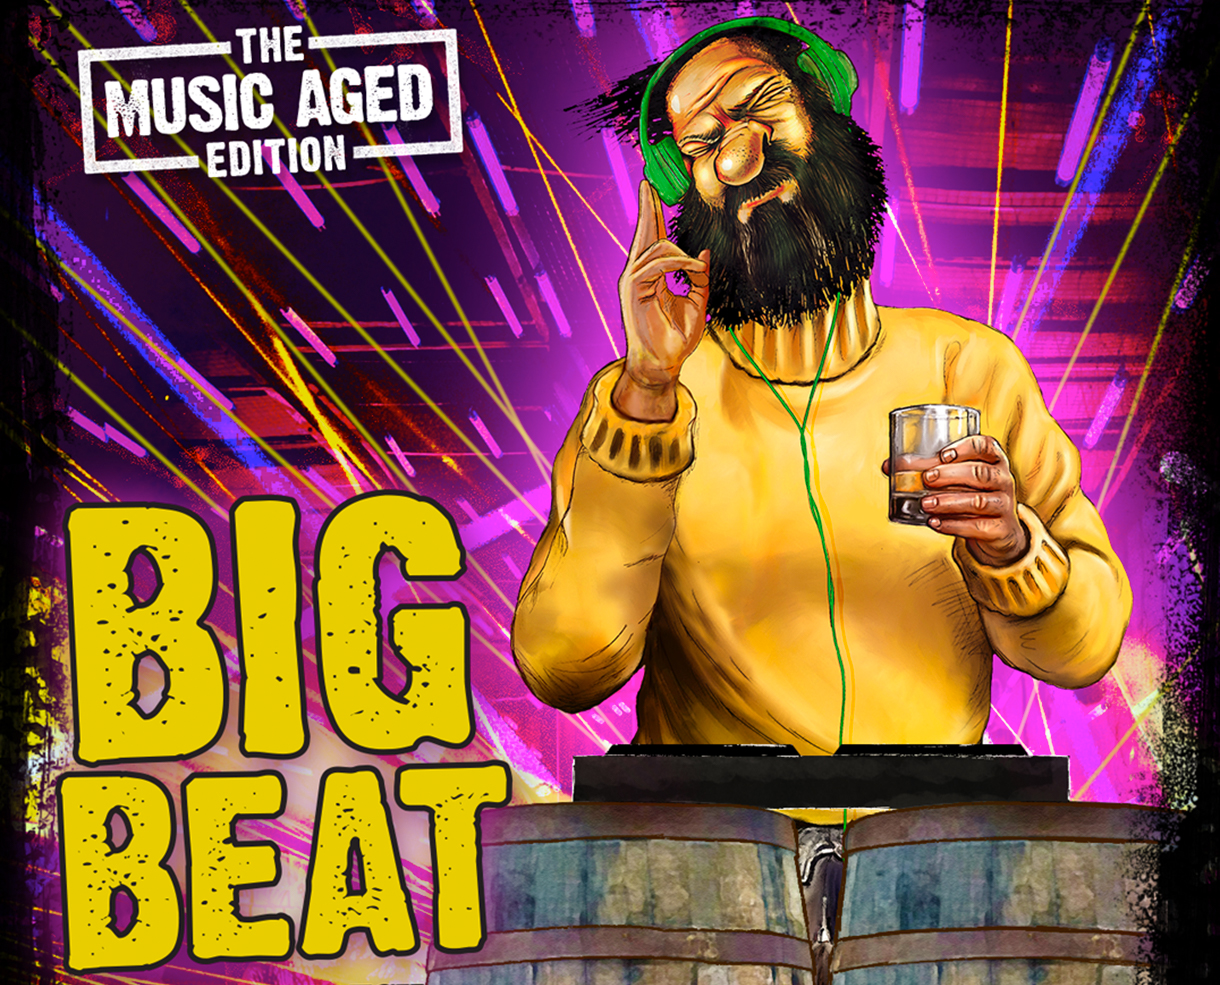 Douglas Laing's 'Big Beat' April Fools Joke Is Actually Pretty Funny